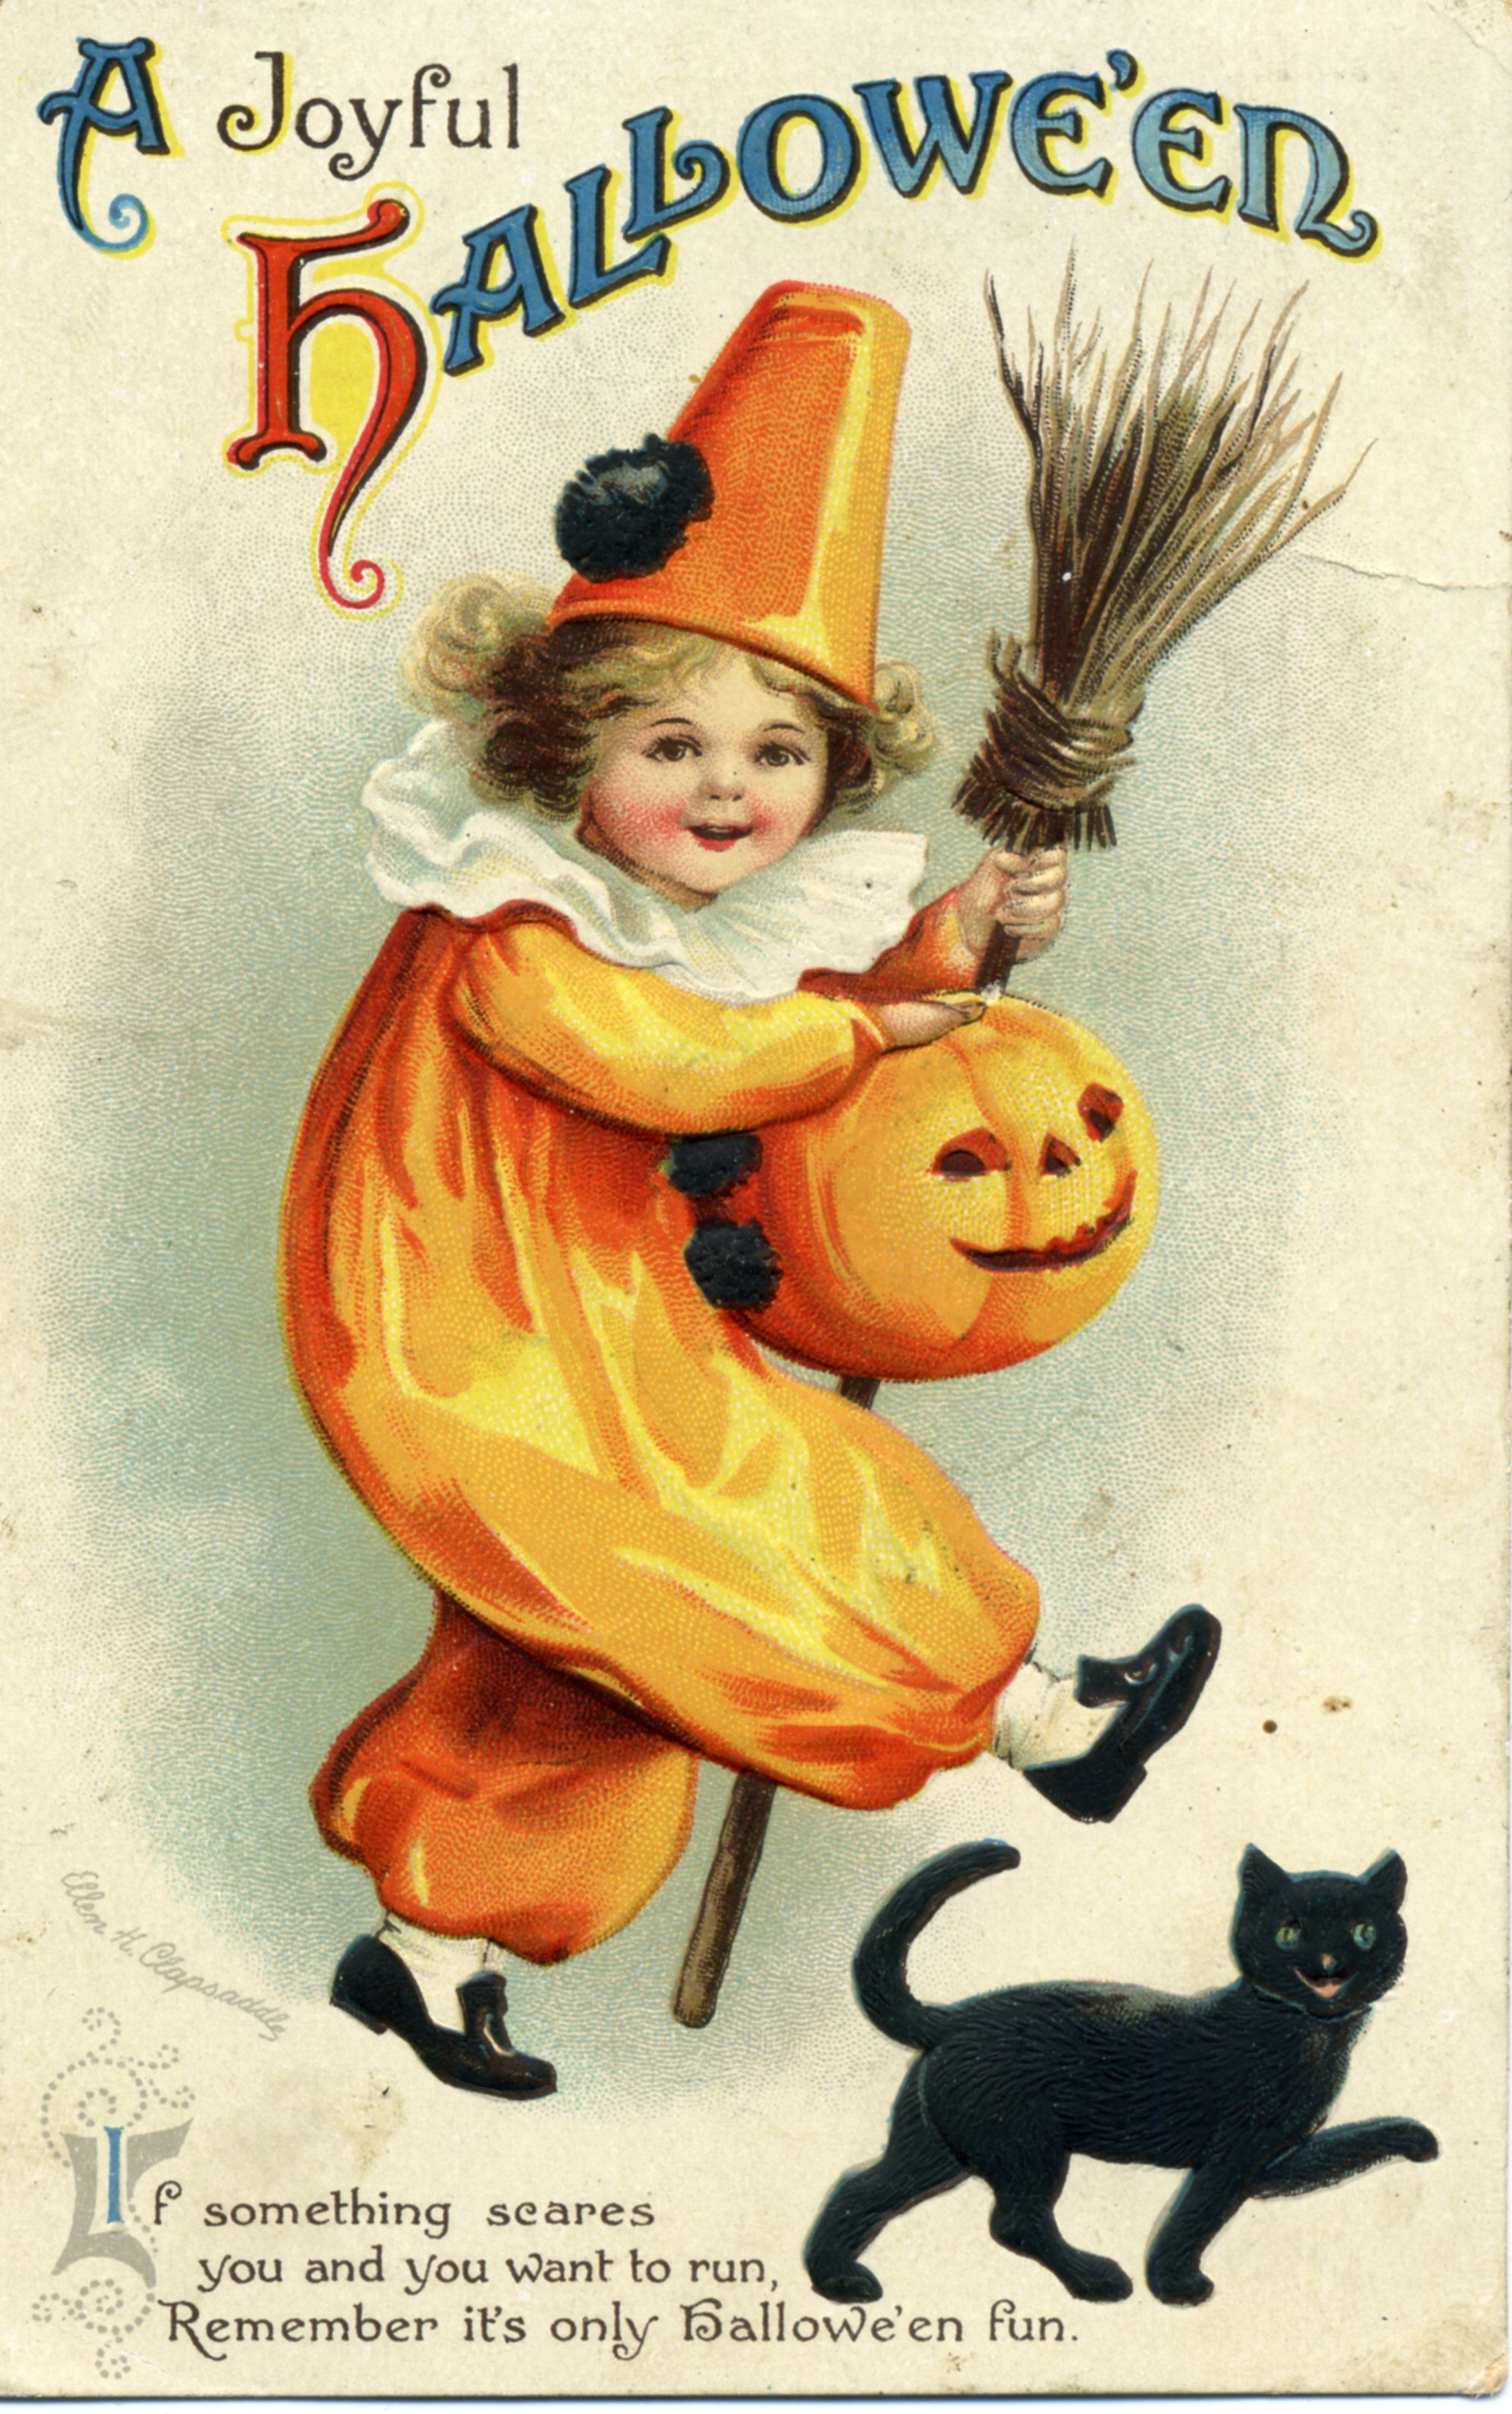 Floor Vintage Halloween Postcard Black Cats A Joyful Vintage Halloweenpostcard Vintage Halloween Card You Can Often Find S Costumes On Med Postcards